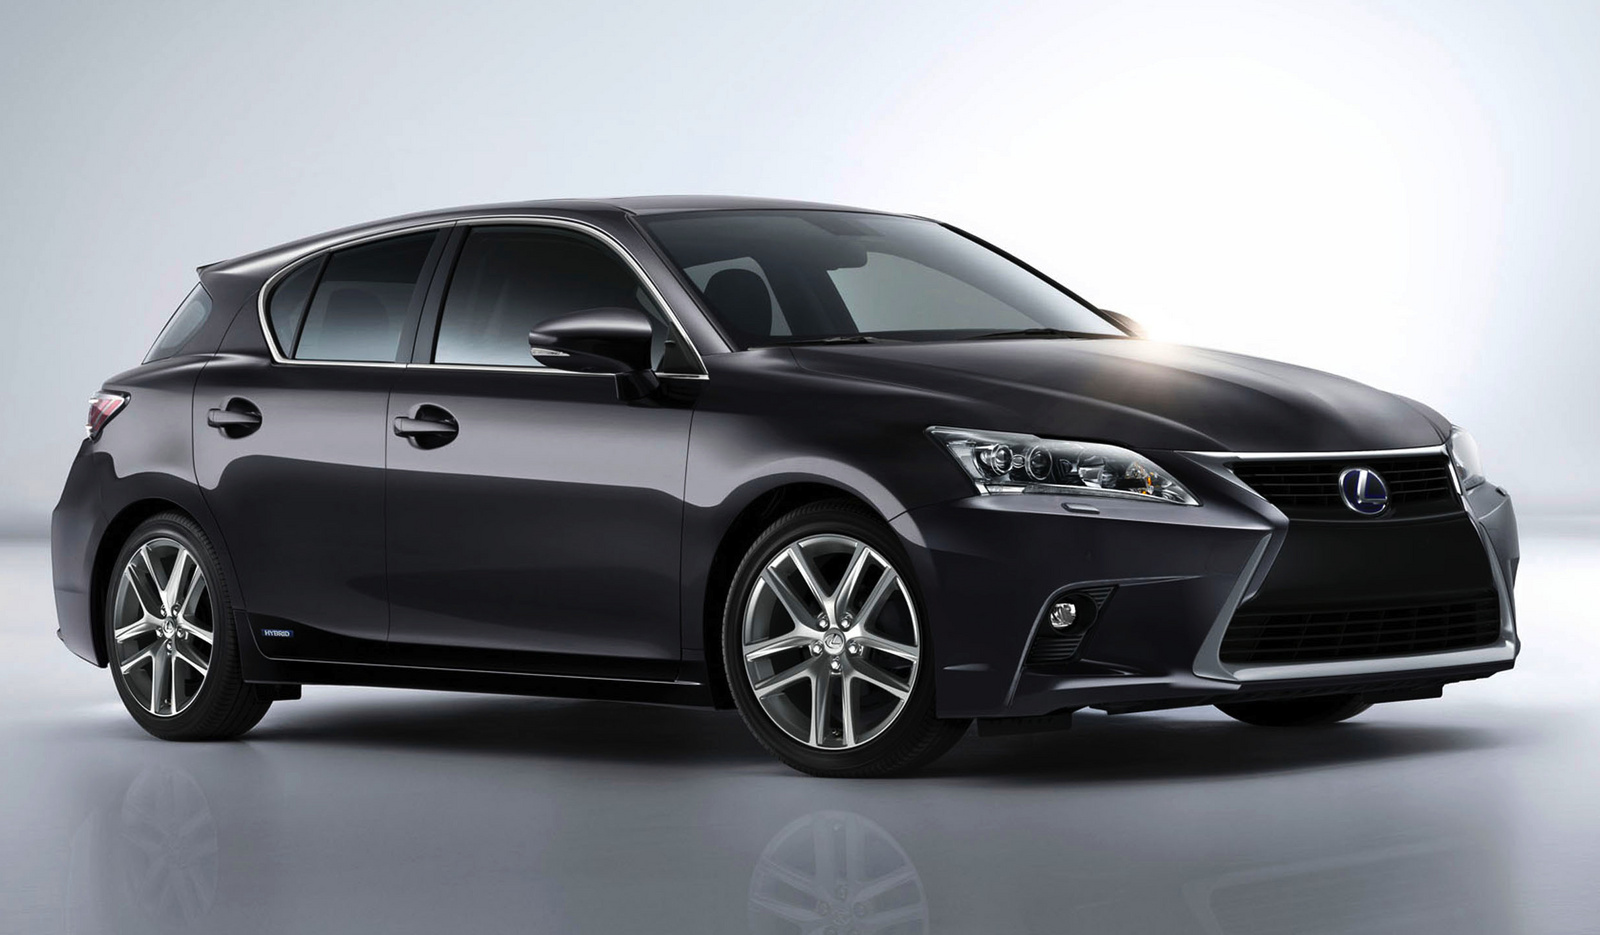 Toyota Dealers Ct >> 2014 Lexus CT 200h - Review - CarGurus